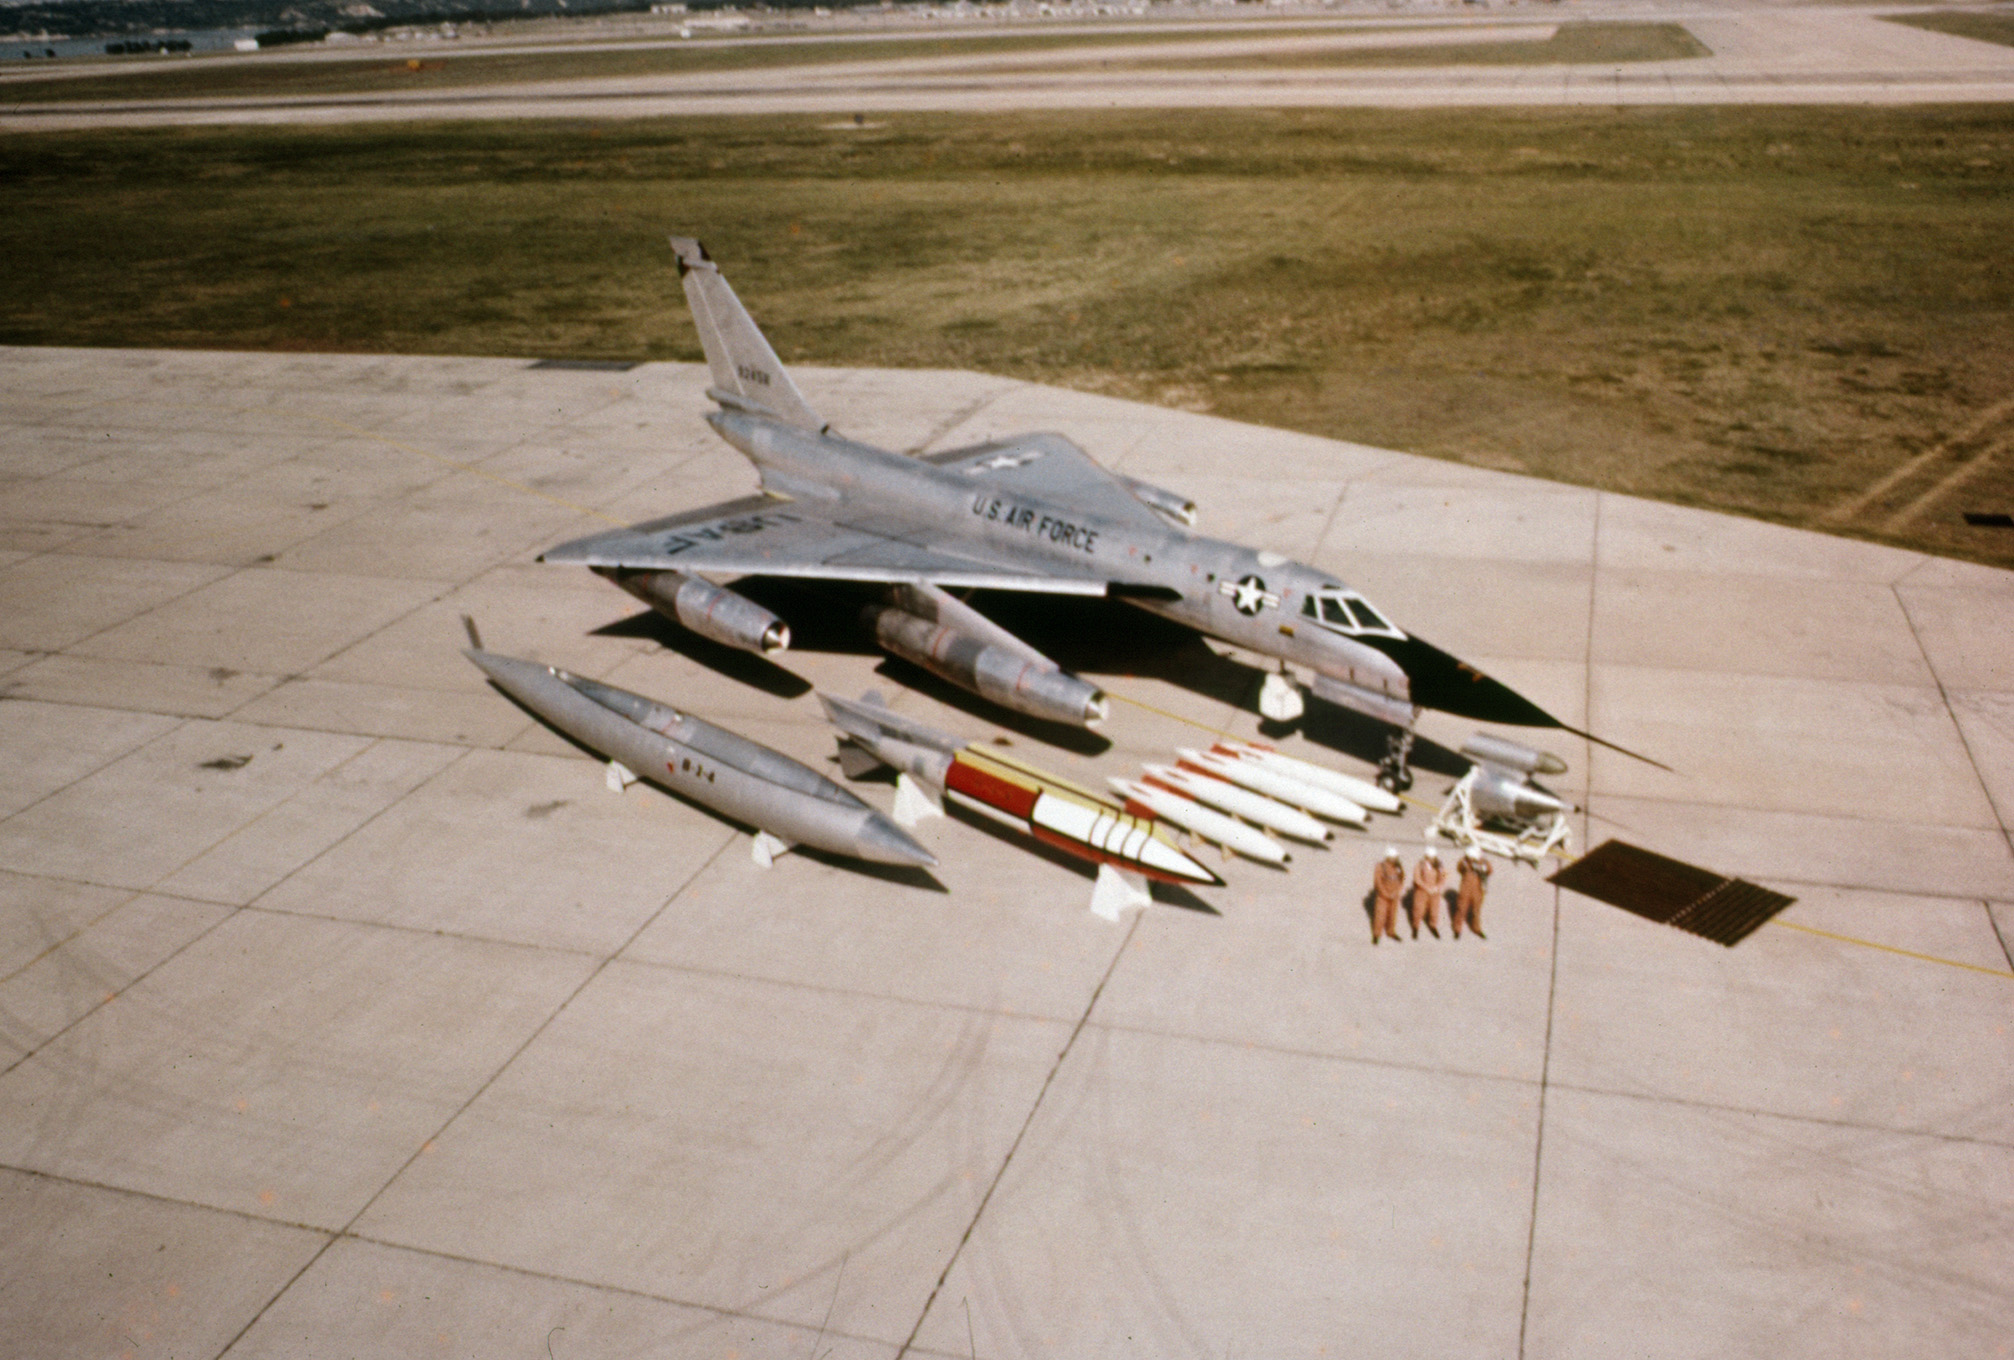 B-58 Hustler with extra fuel tanks, armaments and crew